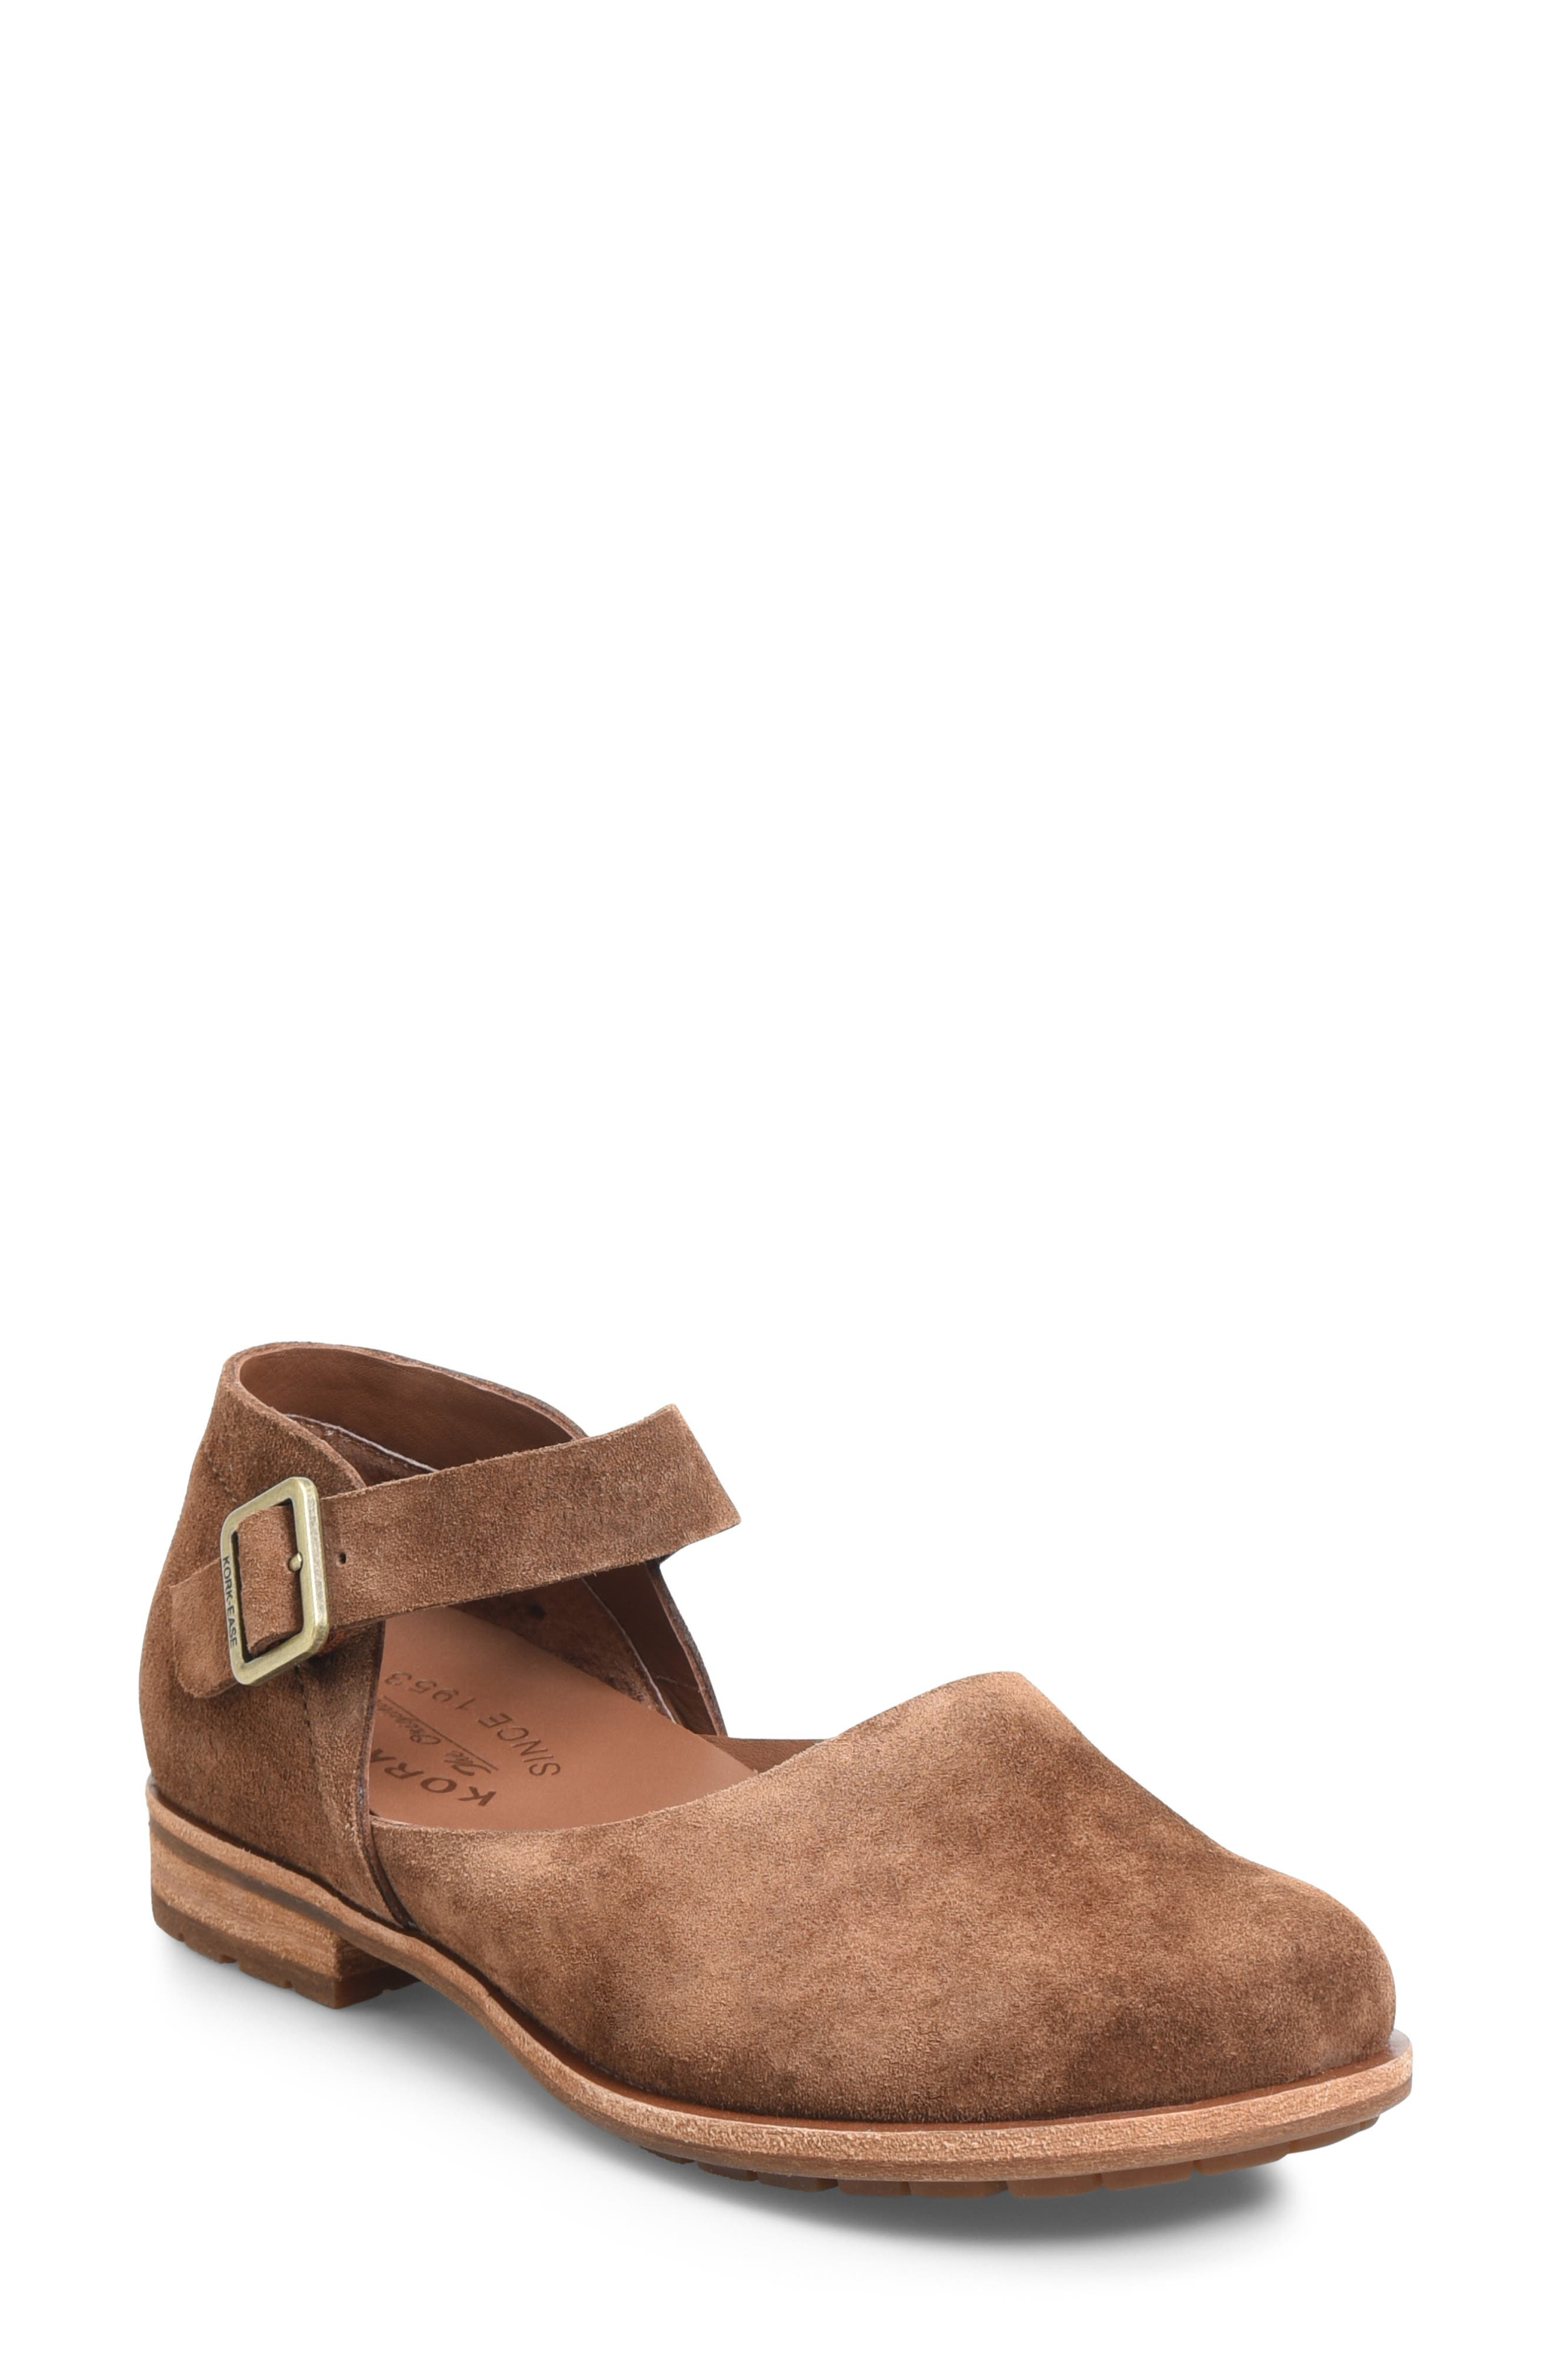 Kork-Ease Bellota Mary Jane Flat, Brown